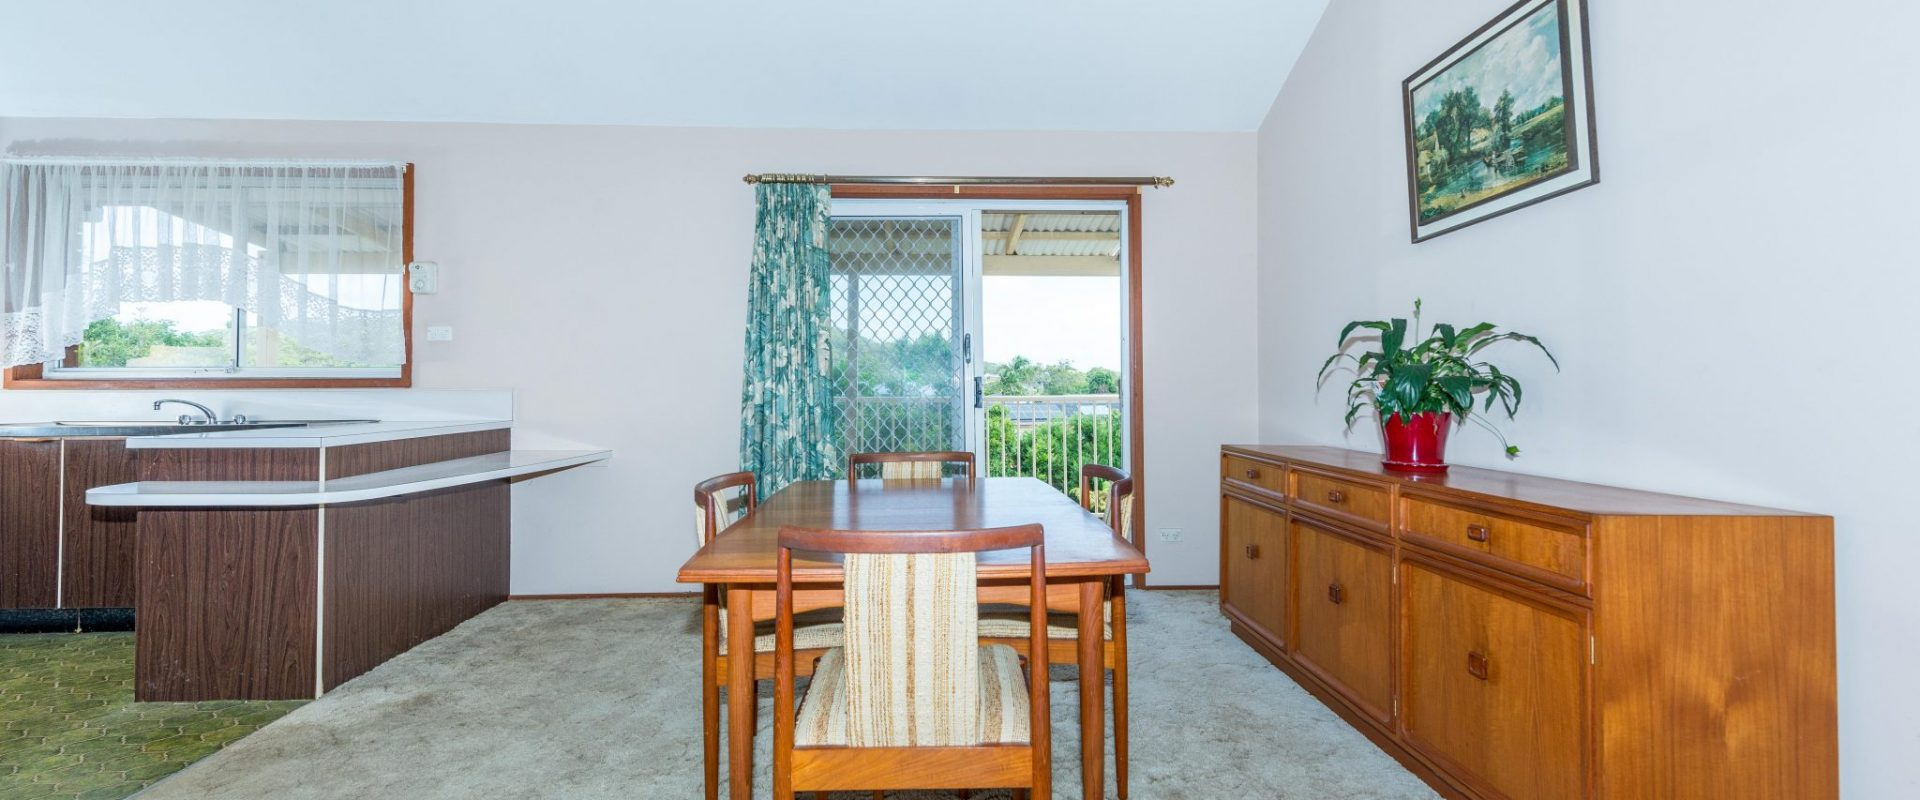 """Crest View"" … Centrally located and enjoying the views"